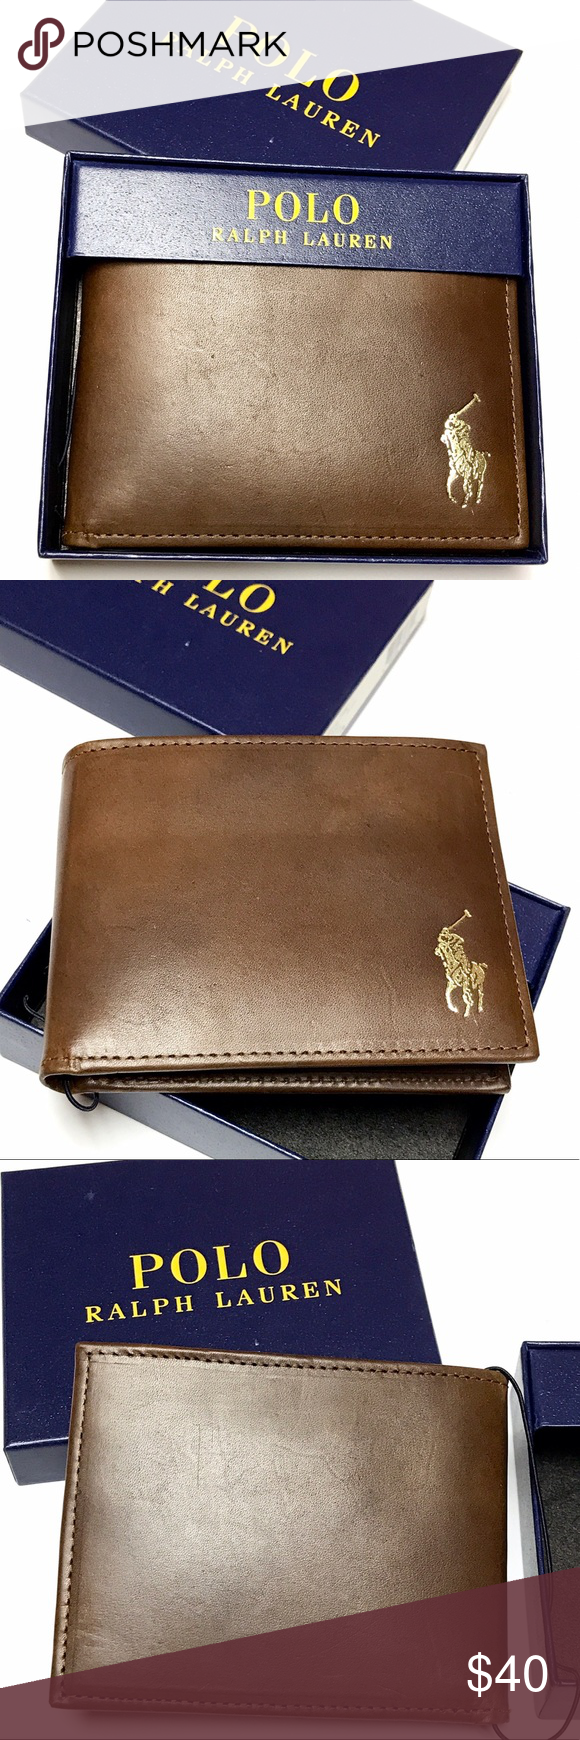 NIB - Men s POLO Wallet Men s Authentic Ralph Lauren POLO Leather Wallet •  Bi-fold • 3 card slots • 2 bill slots • Removable insert with 2 clear ID  windows ... bf07995e819